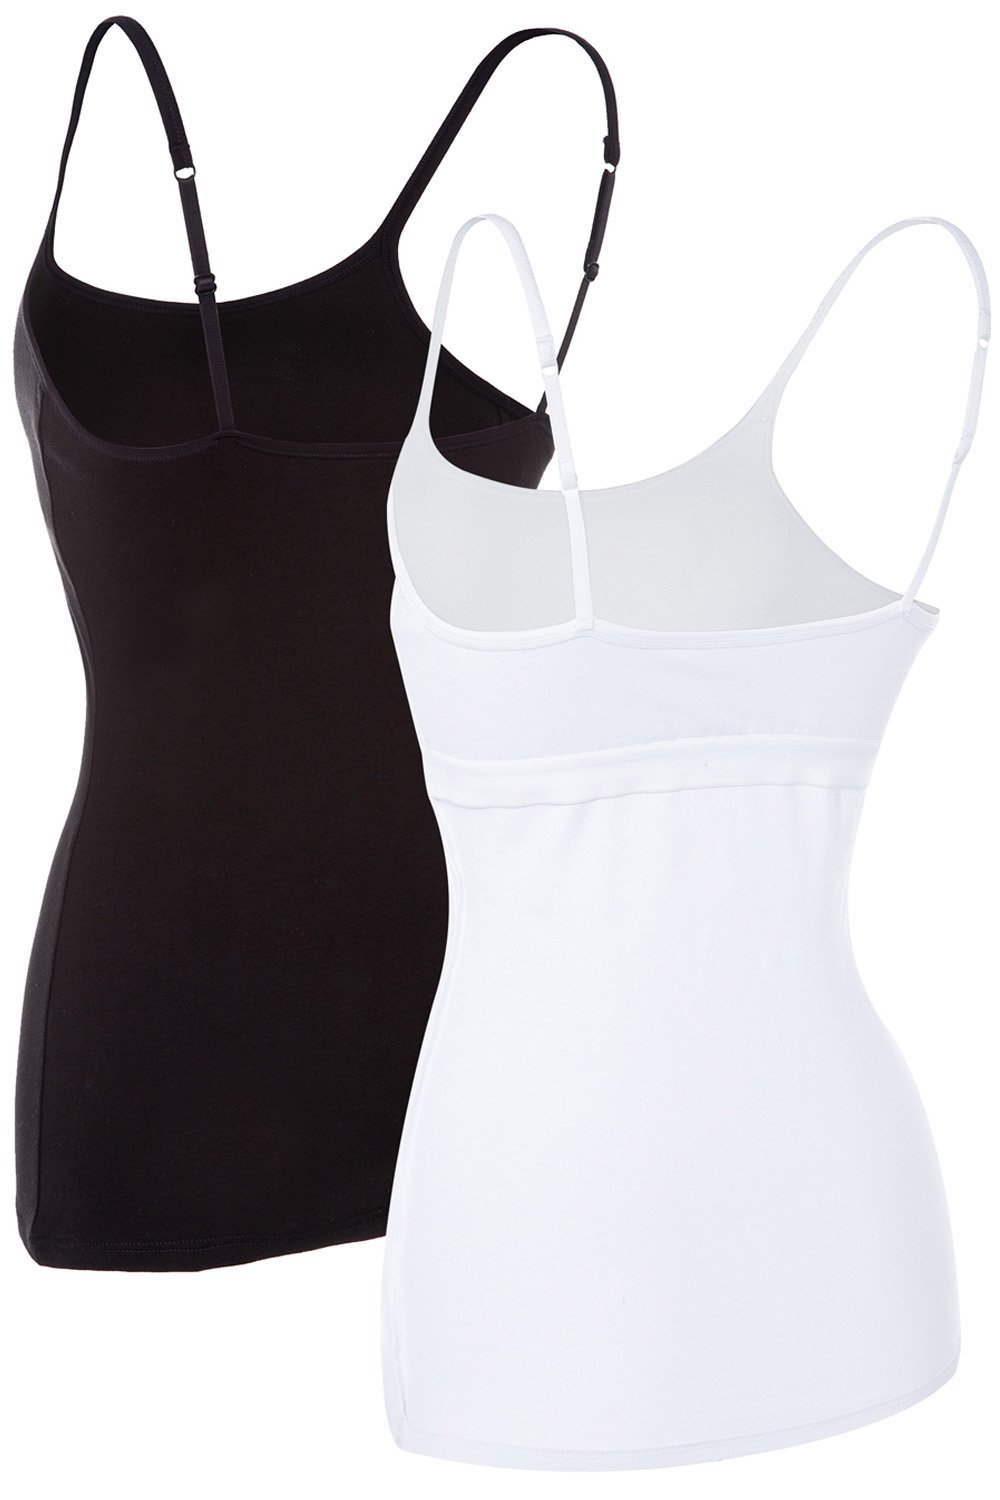 ALove Women Soft Camisoles Basic Cami Tops Shelf Bra Casual Tank Tops 2 Pack Small by ALove (Image #4)